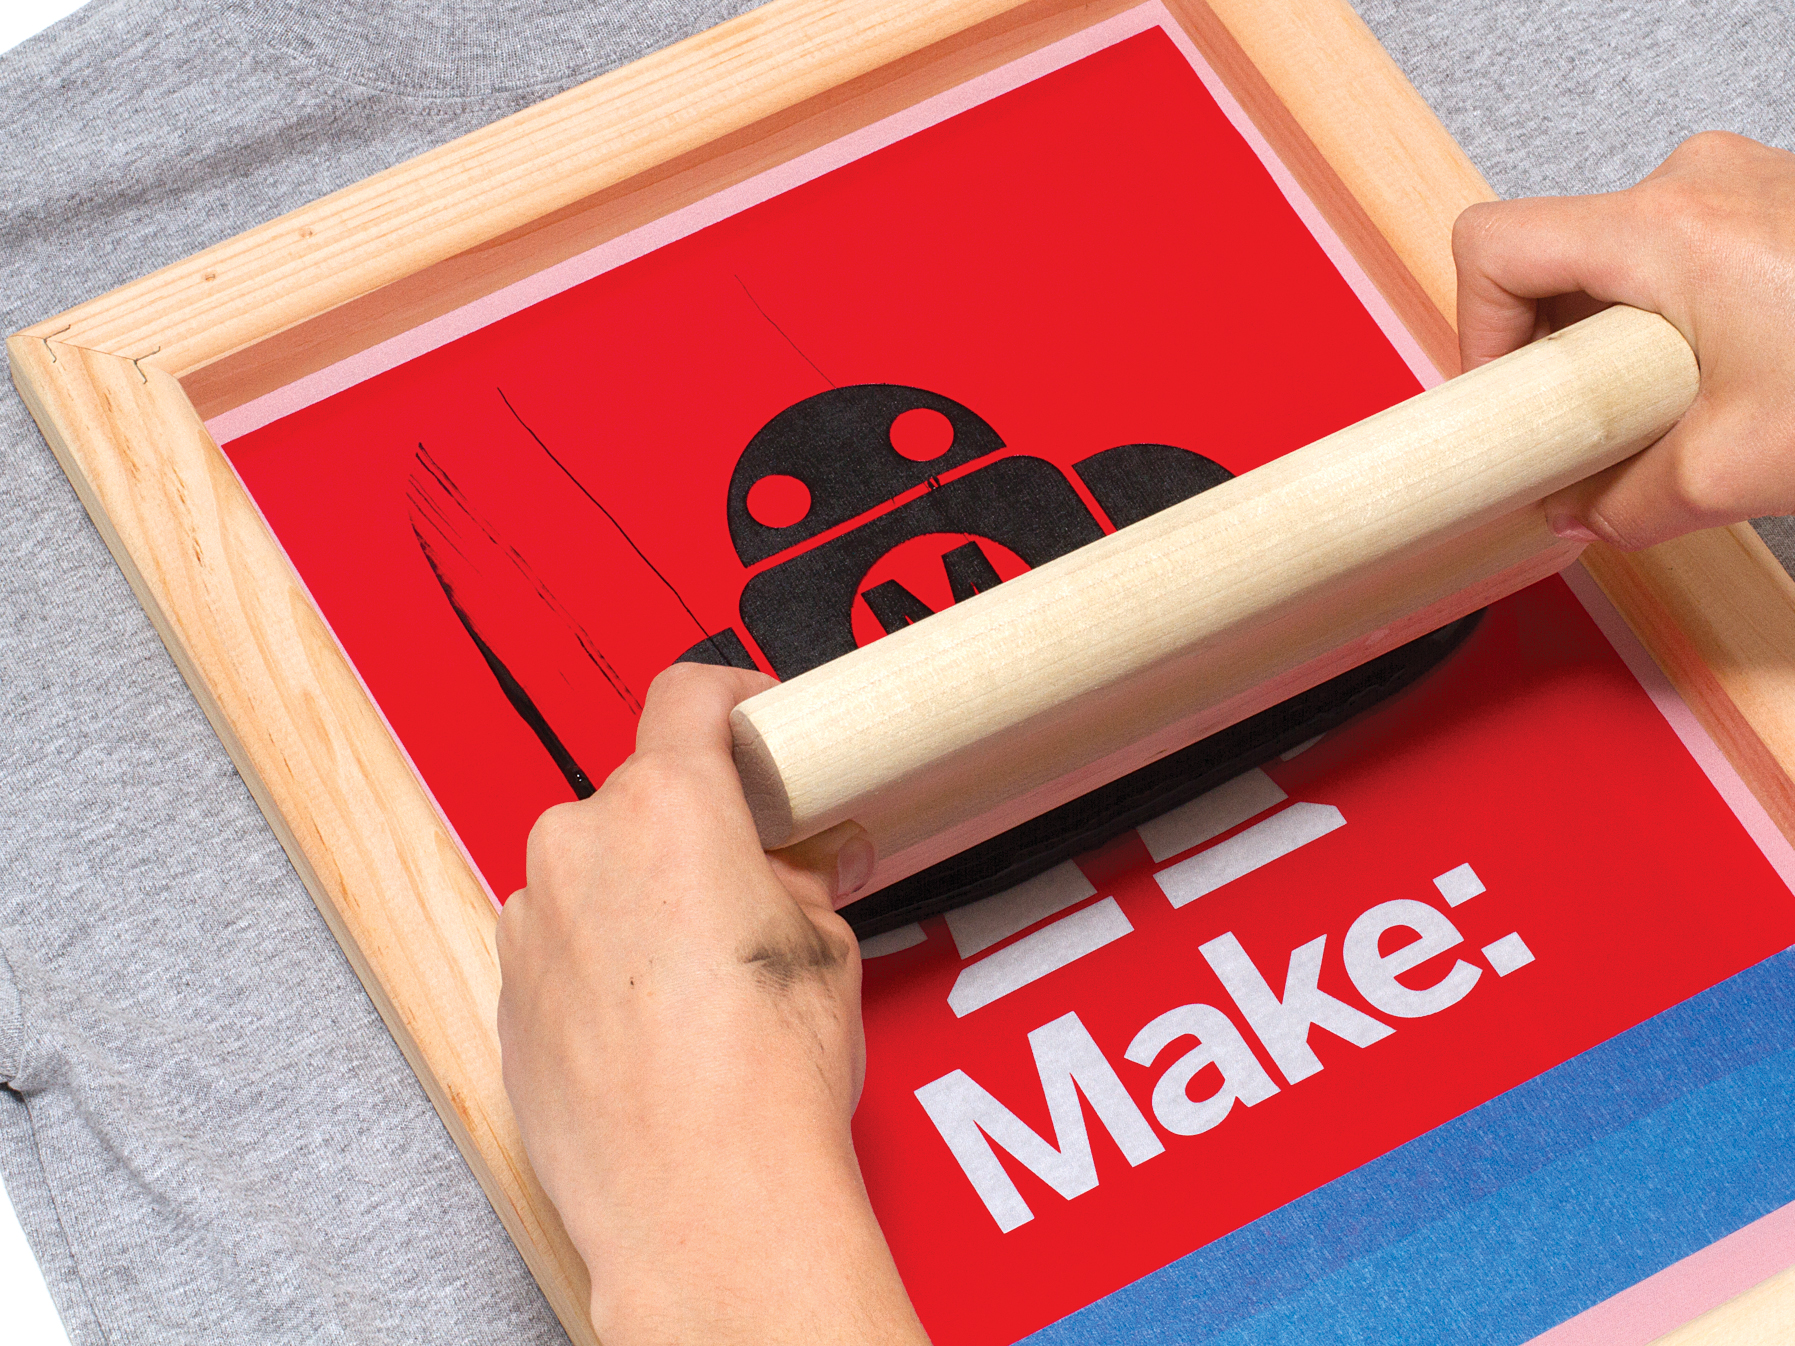 8c5c7faa Simple Silk-Screen Printing Using a Vinyl Cutter | Make: